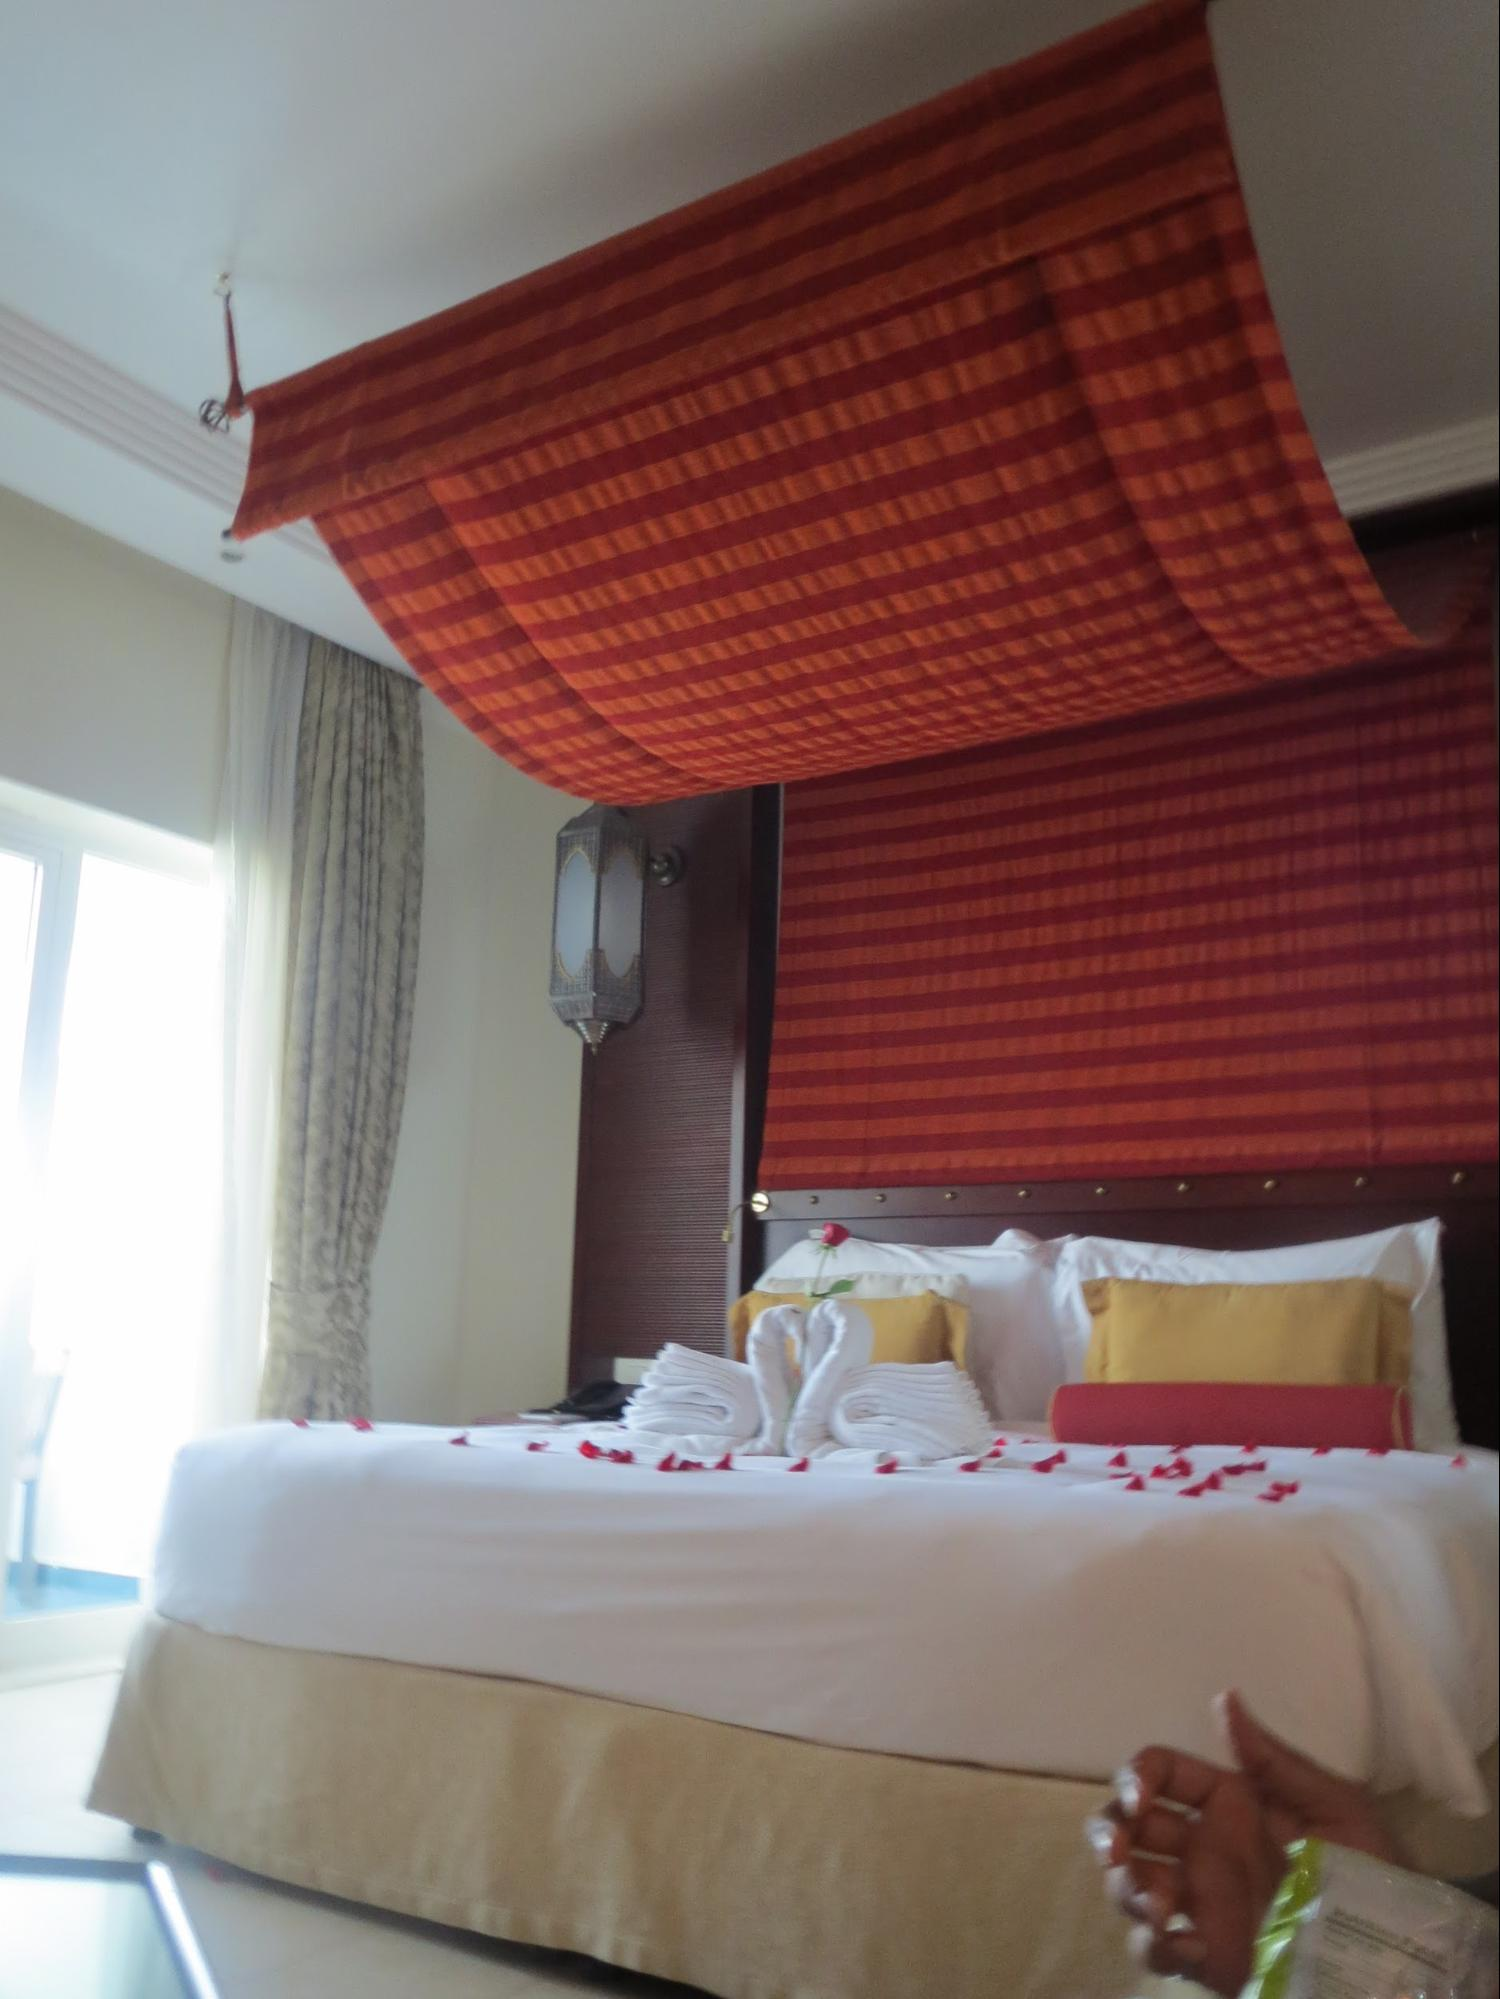 Kempinski Hotel, Ajman Review - Leisure Club Room - Beautiful Swans with Towels